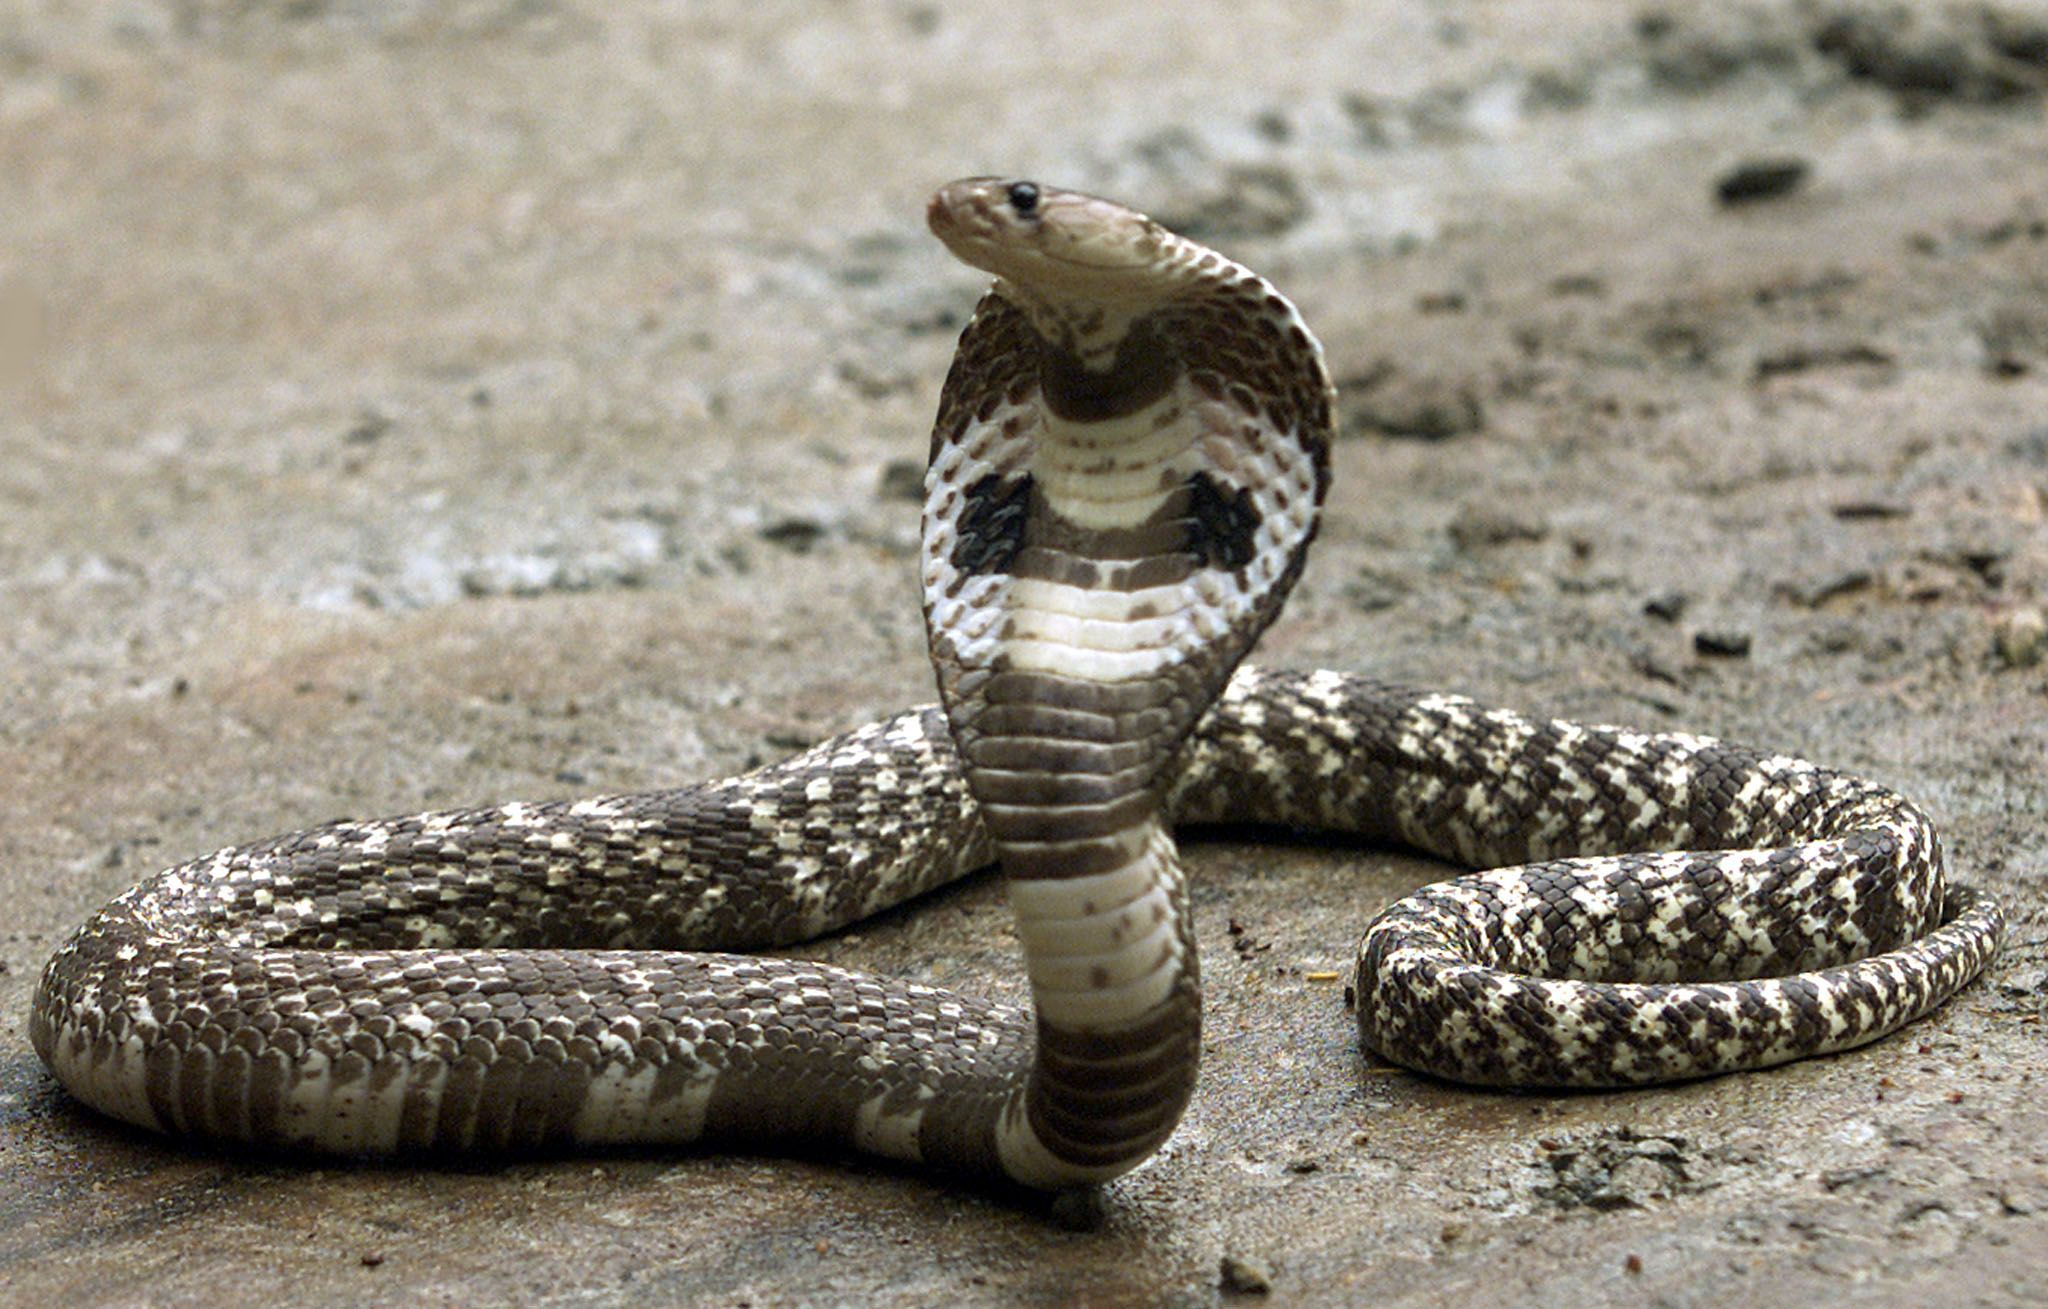 8-Foot King Cobra Found in Orlando After Over a Month on the Slither